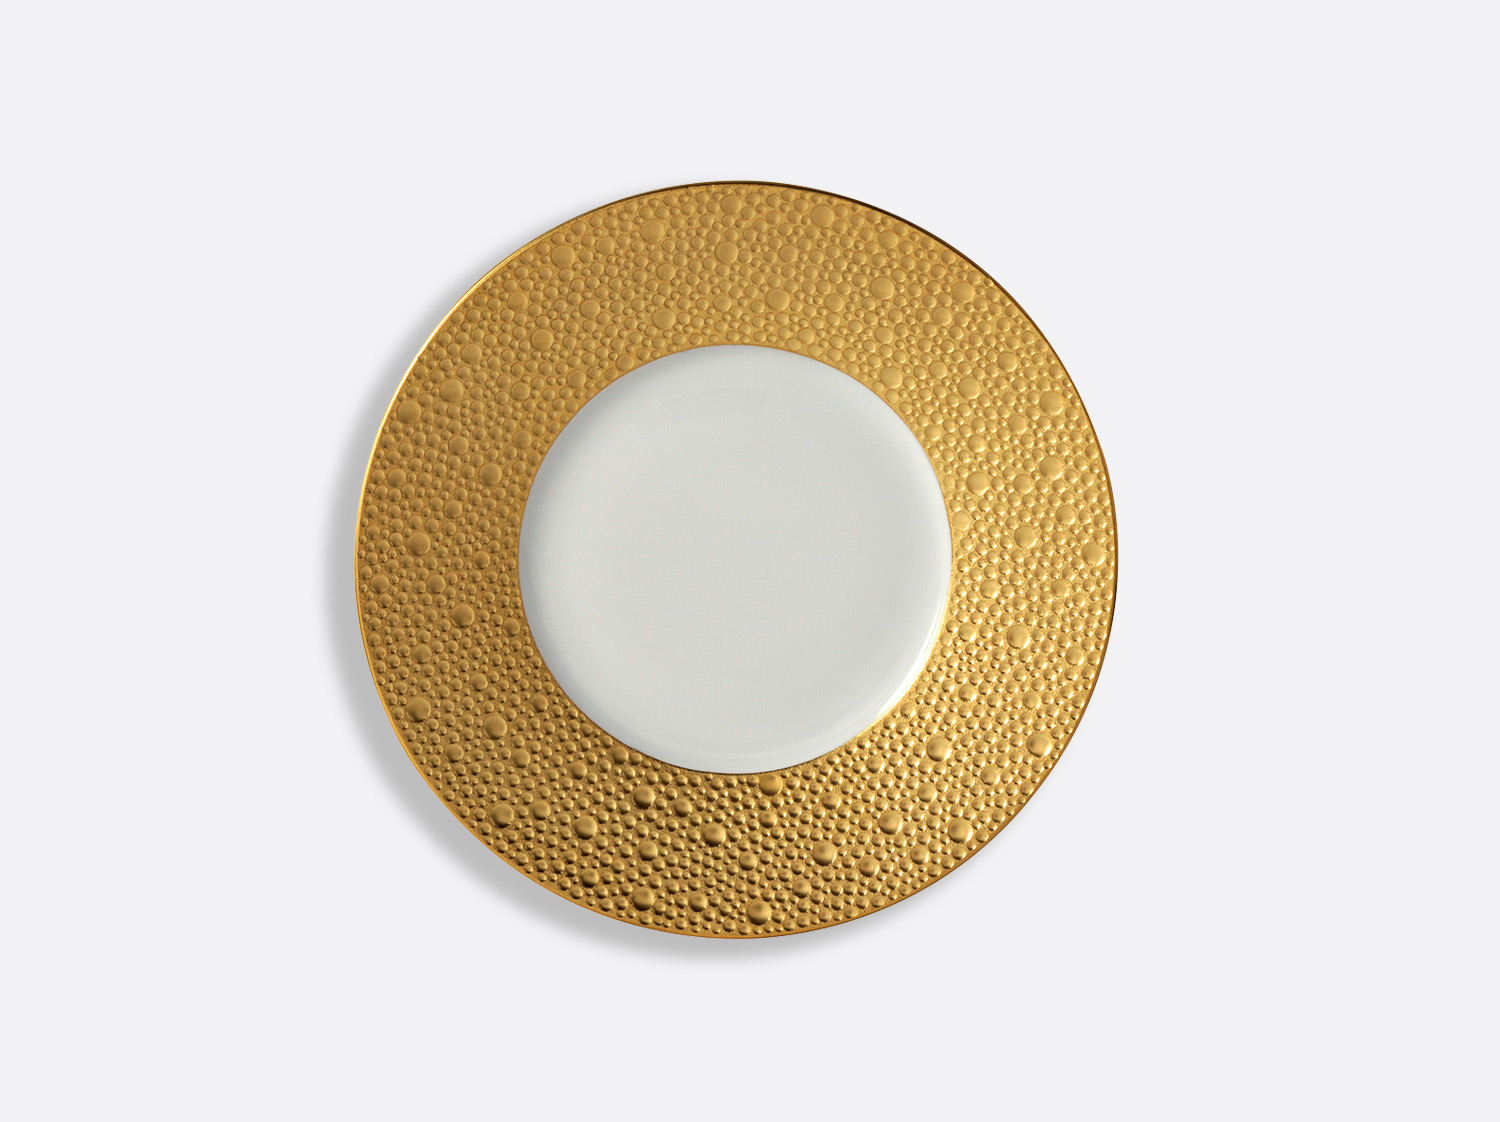 China Plate 16 cm of the collection Ecume gold | Bernardaud